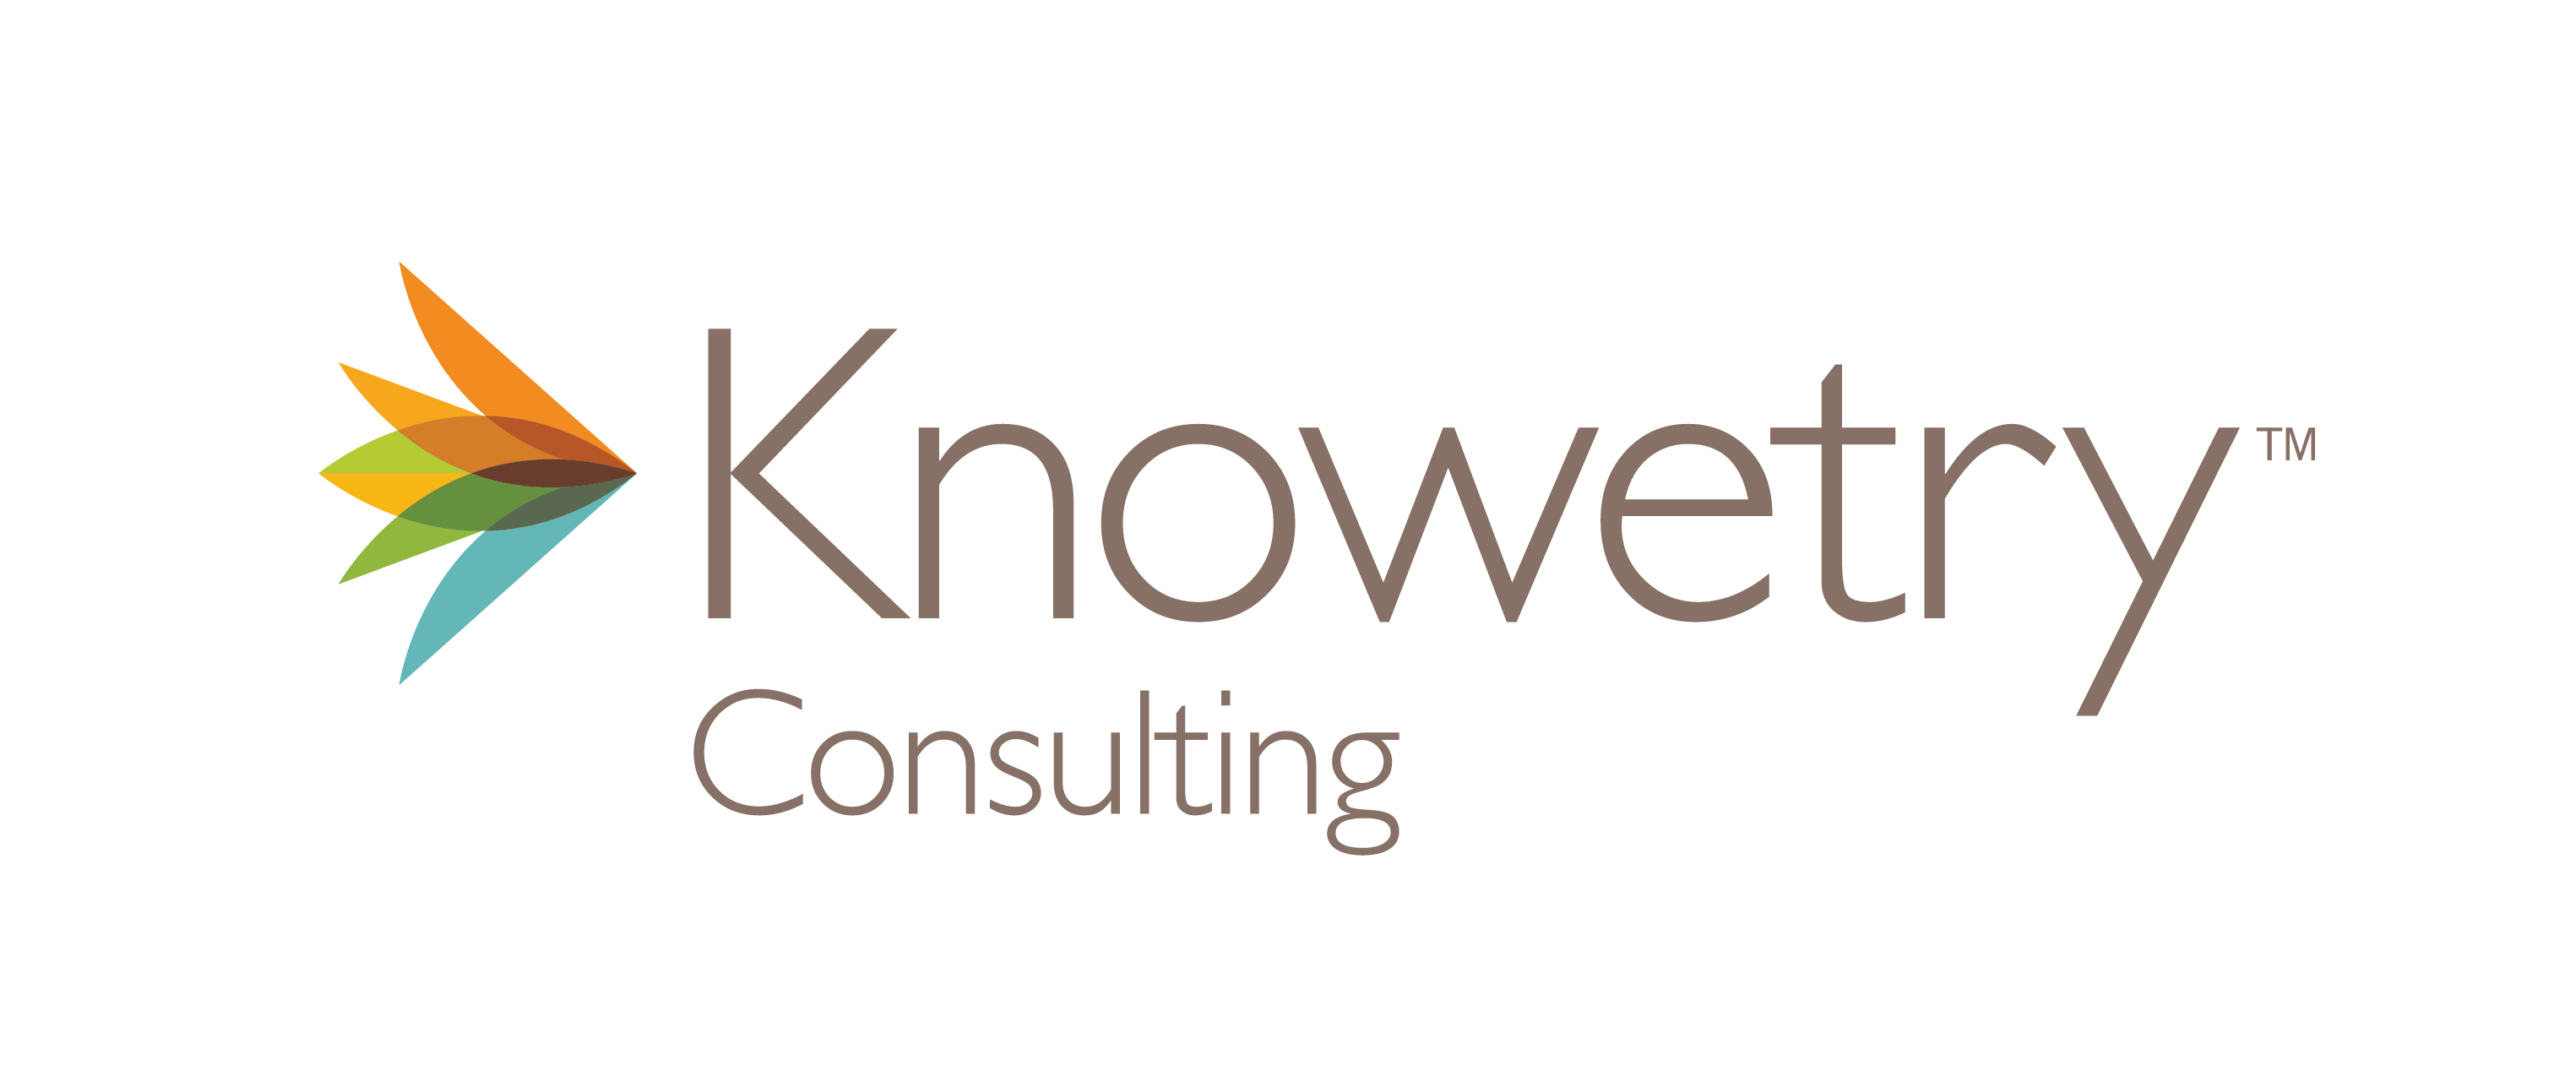 Knowetry Consulting